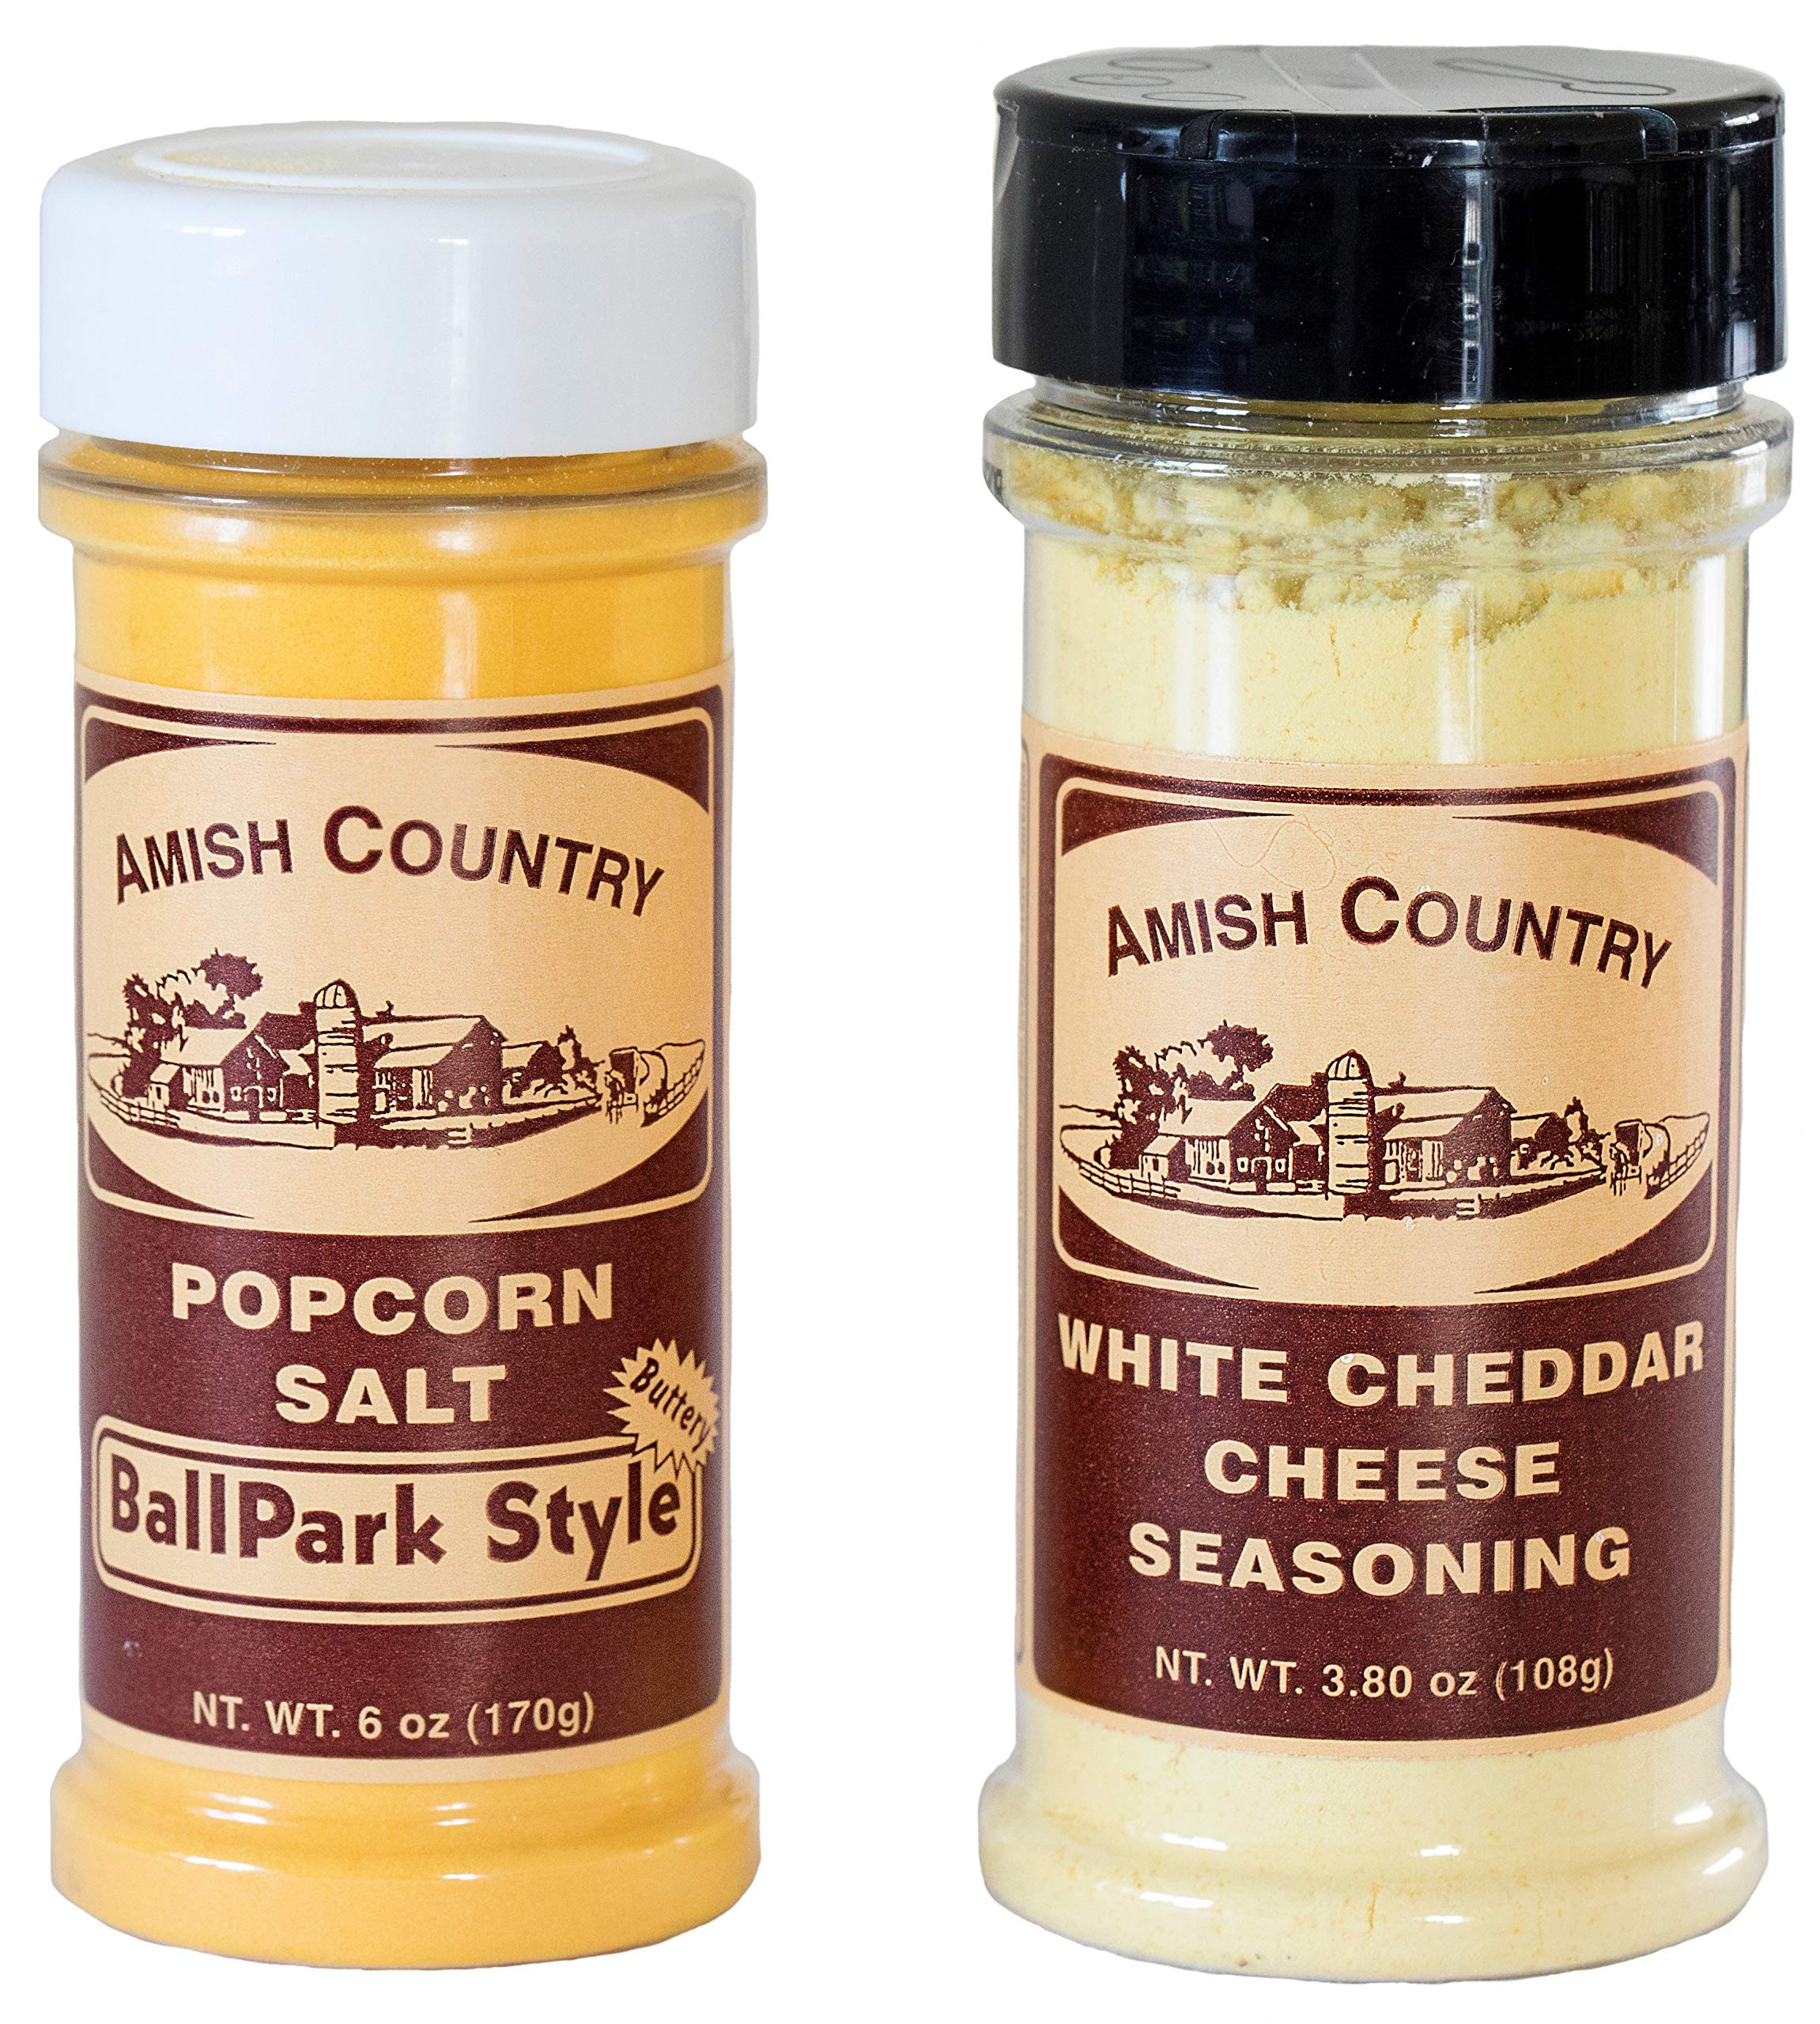 Amish Country Popcorn - BallPark Style Buttersalt (6 Oz) & White Cheddar (3.8 Oz ) Popcorn Seasonings - Old Fashioned with Recipe Guide